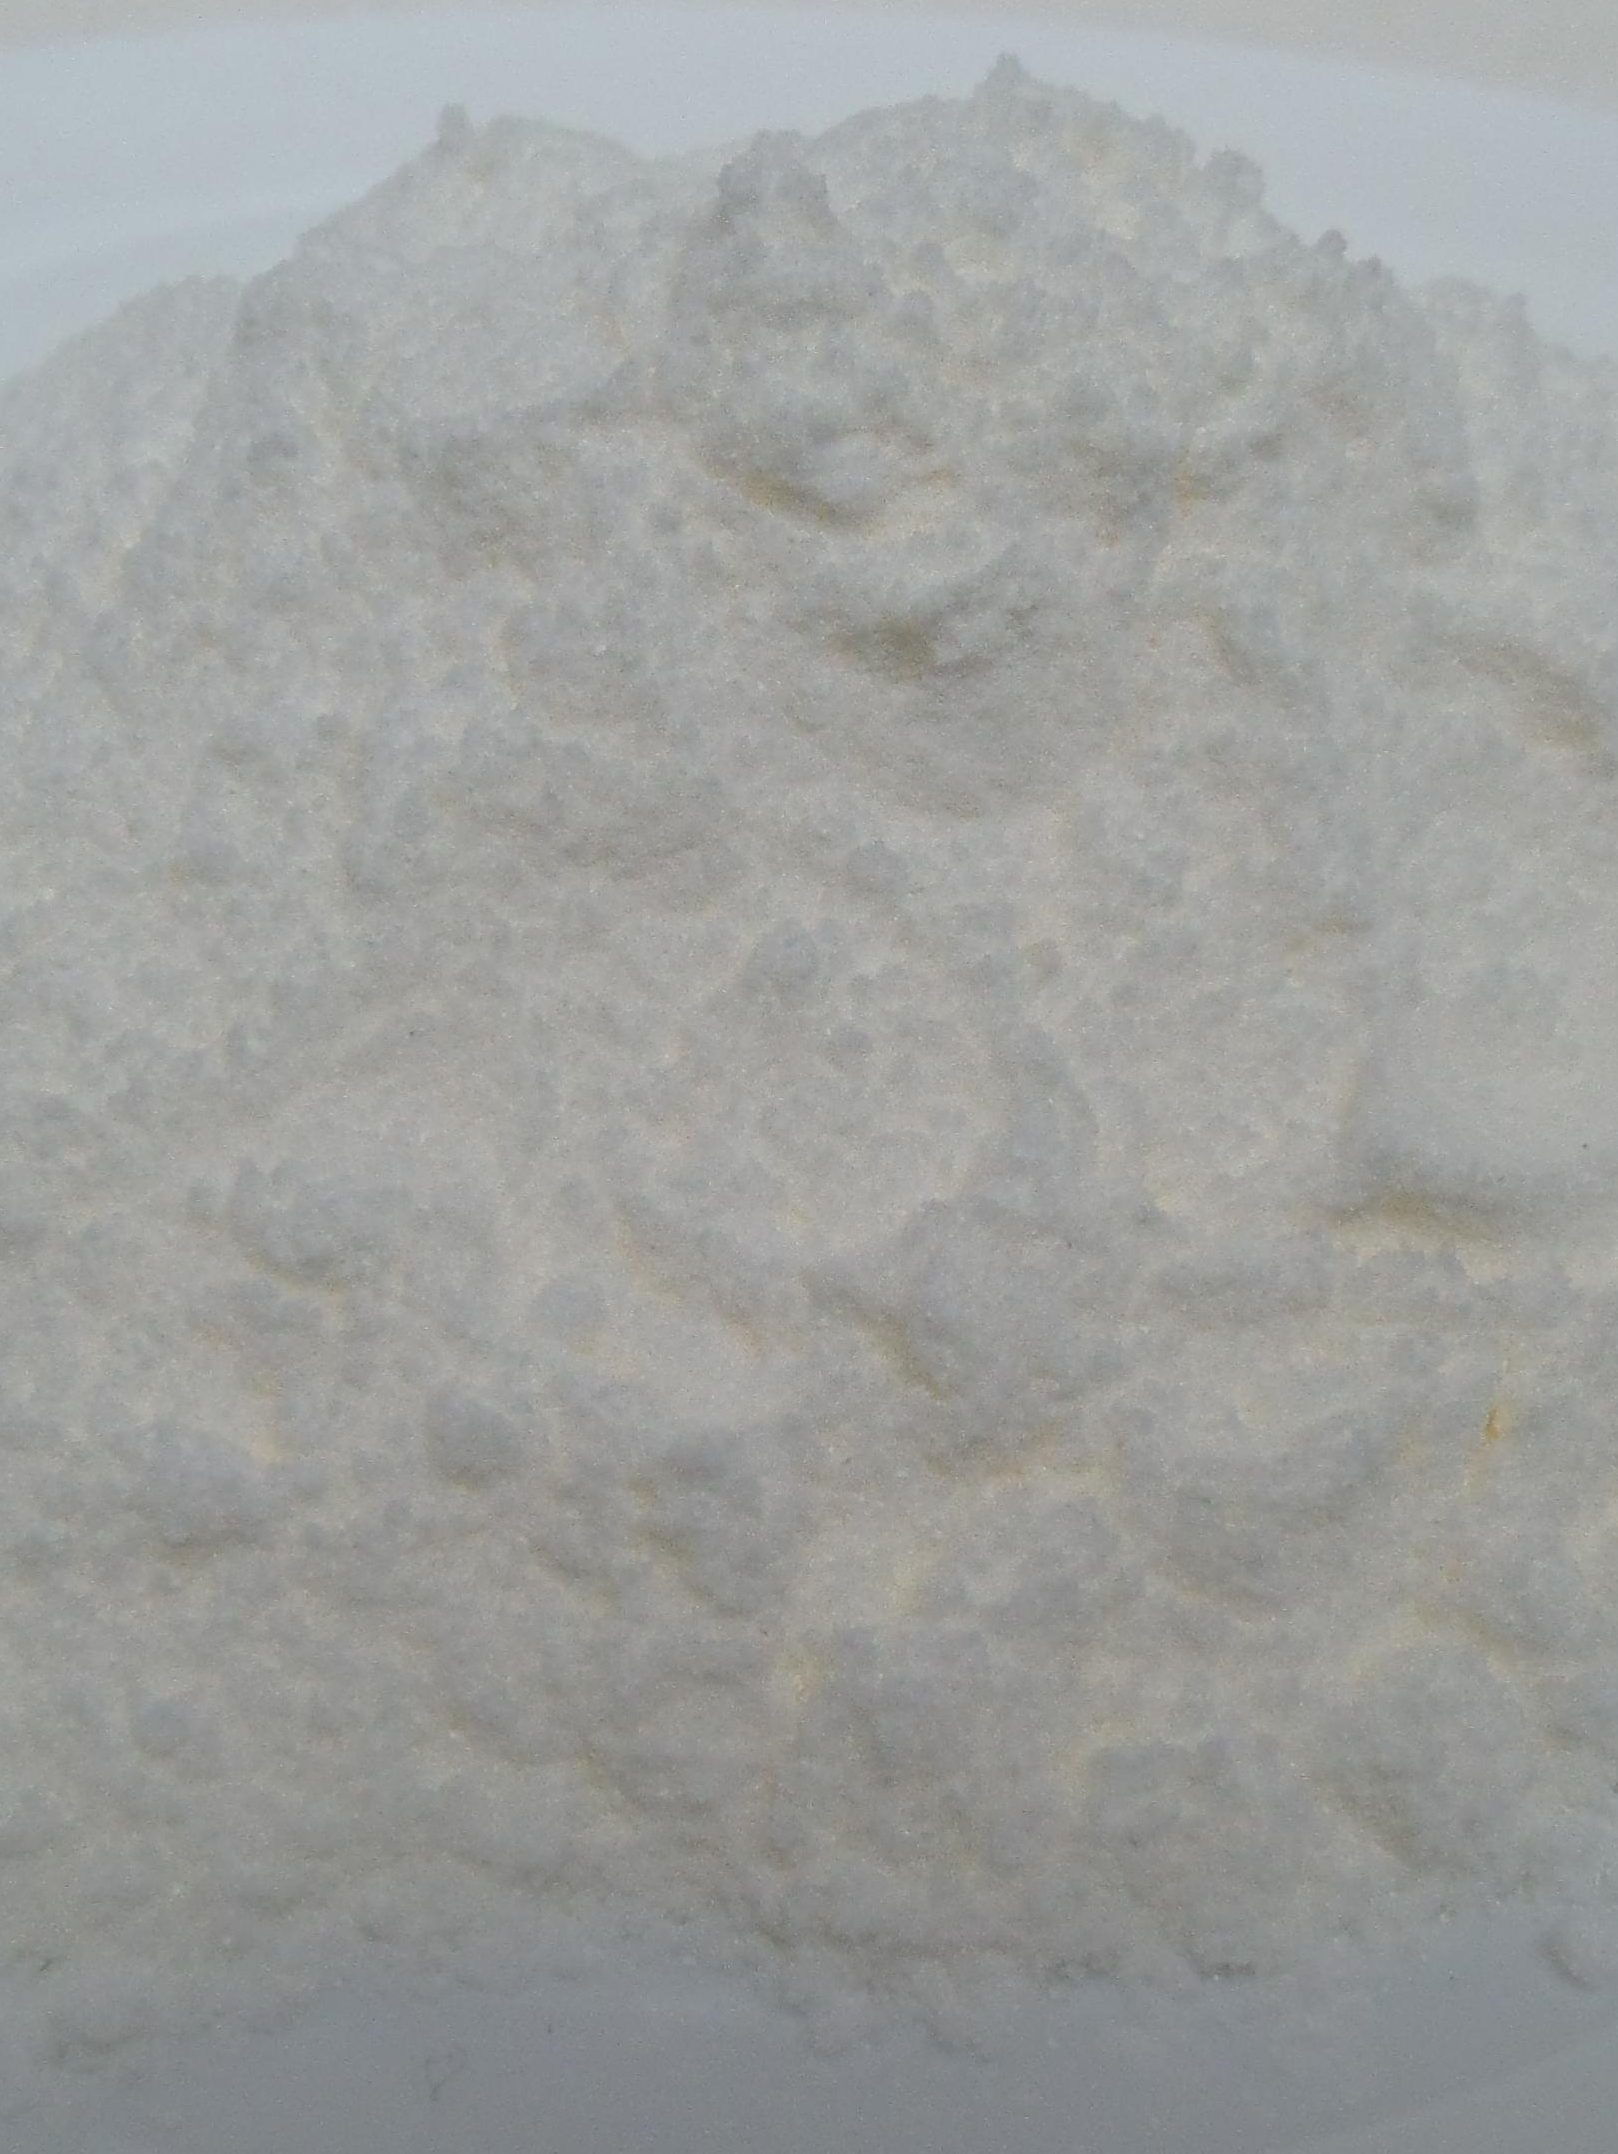 Chondroitin Sulphate 90%